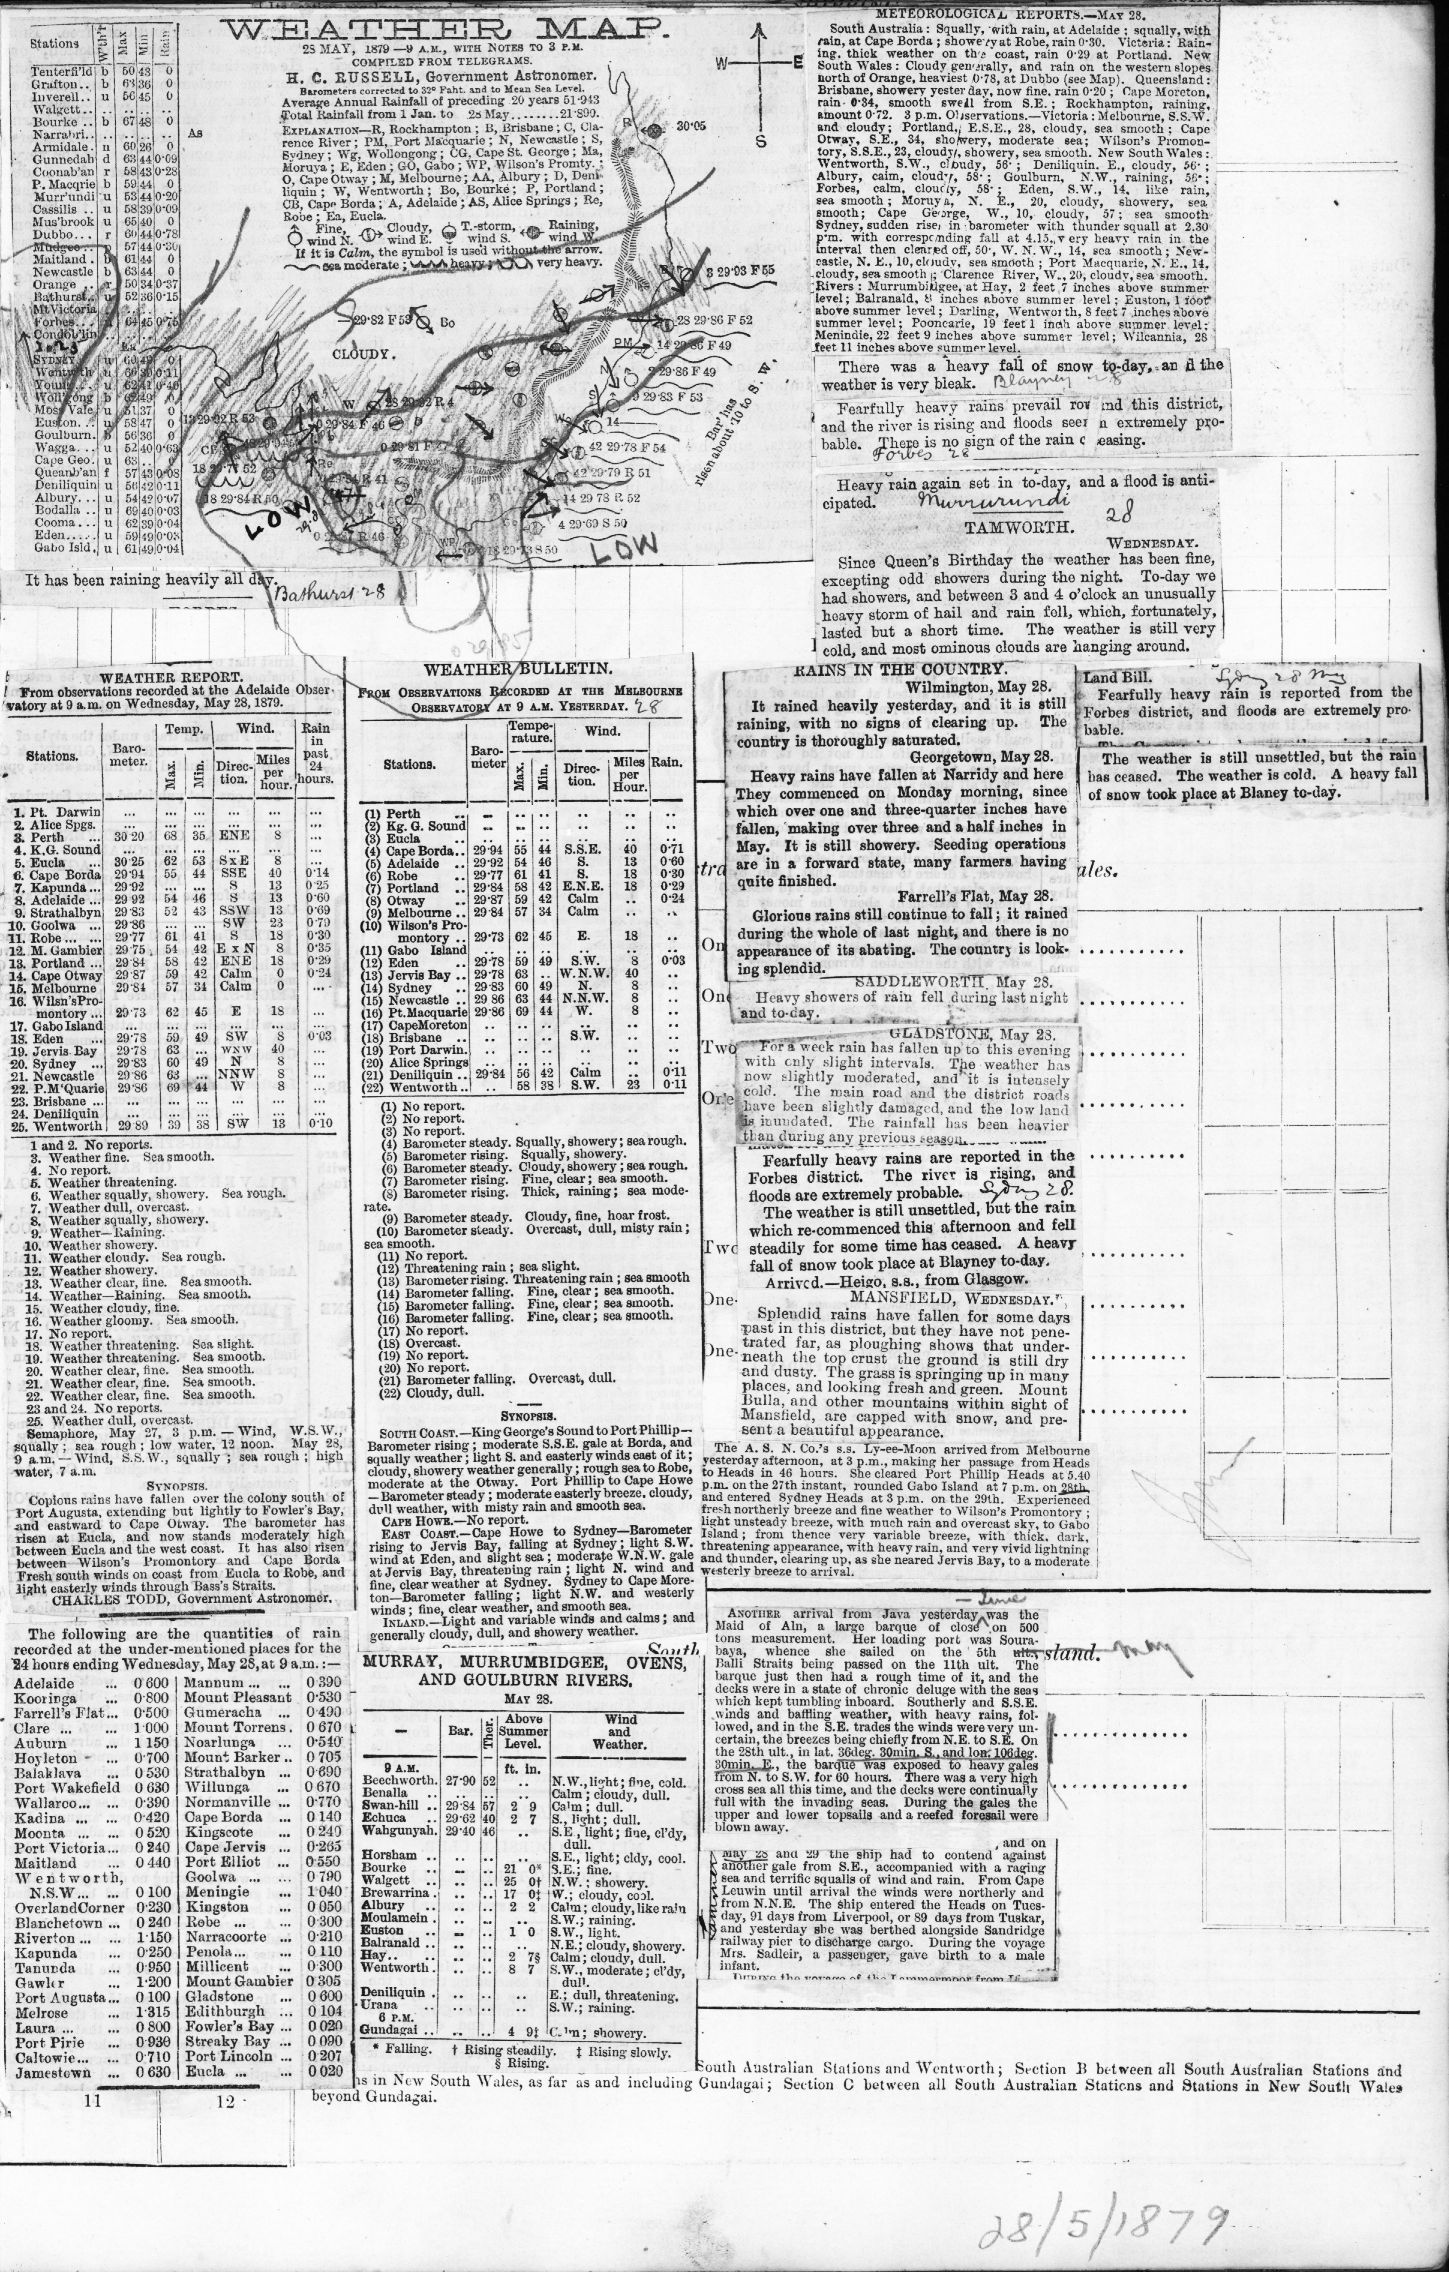 18790528t01 Weather map